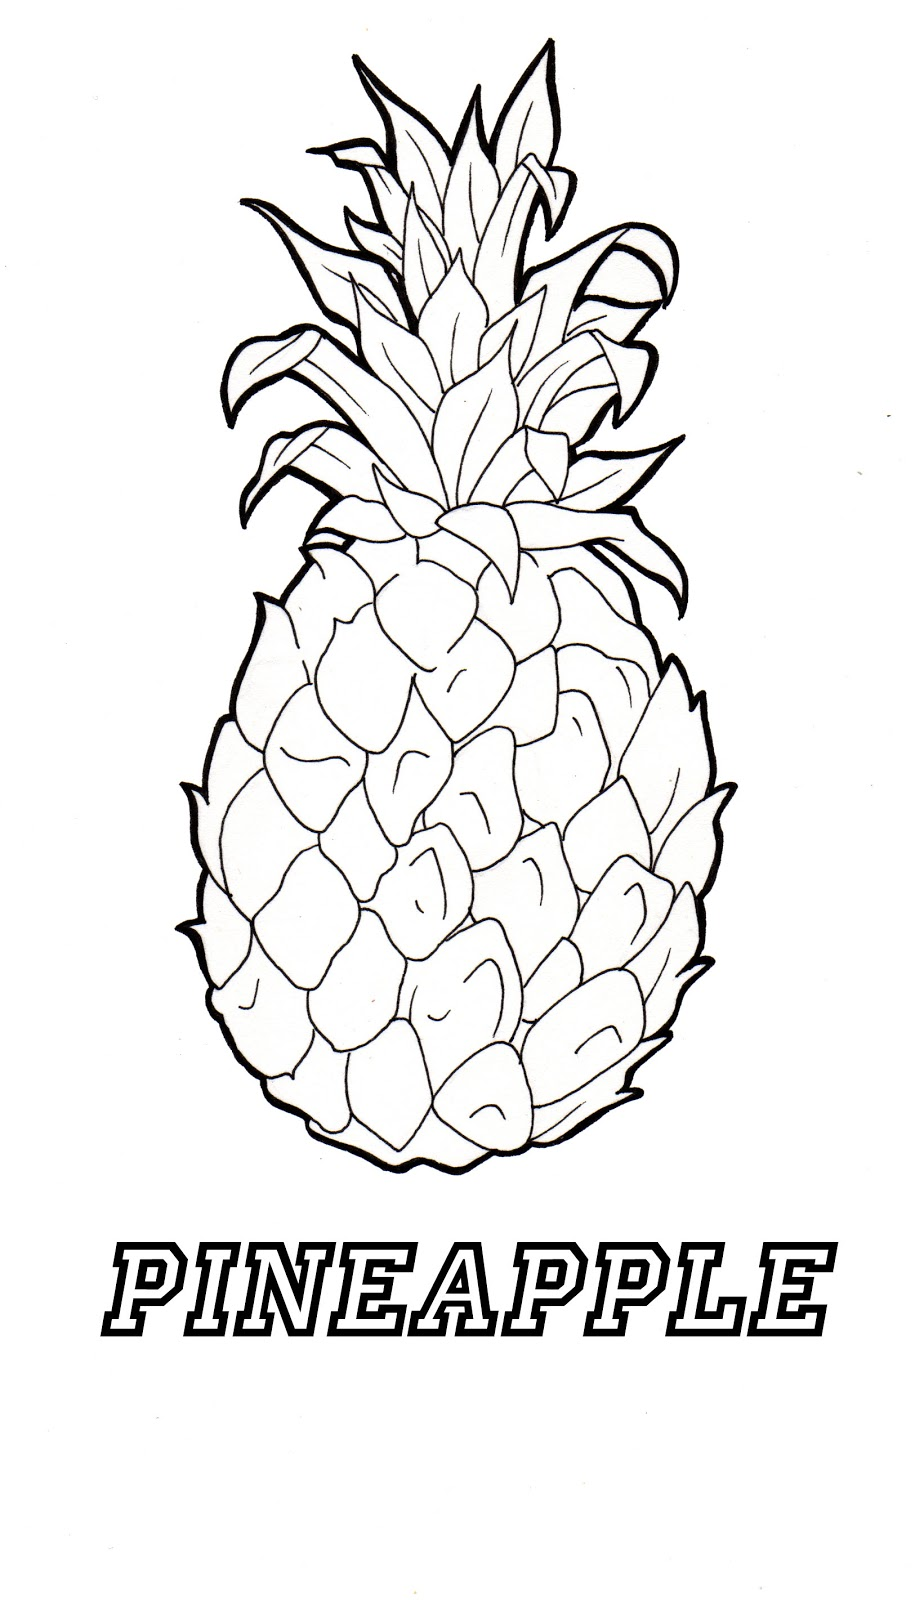 Pineapple Coloring Sheets Cake Ideas and Designs